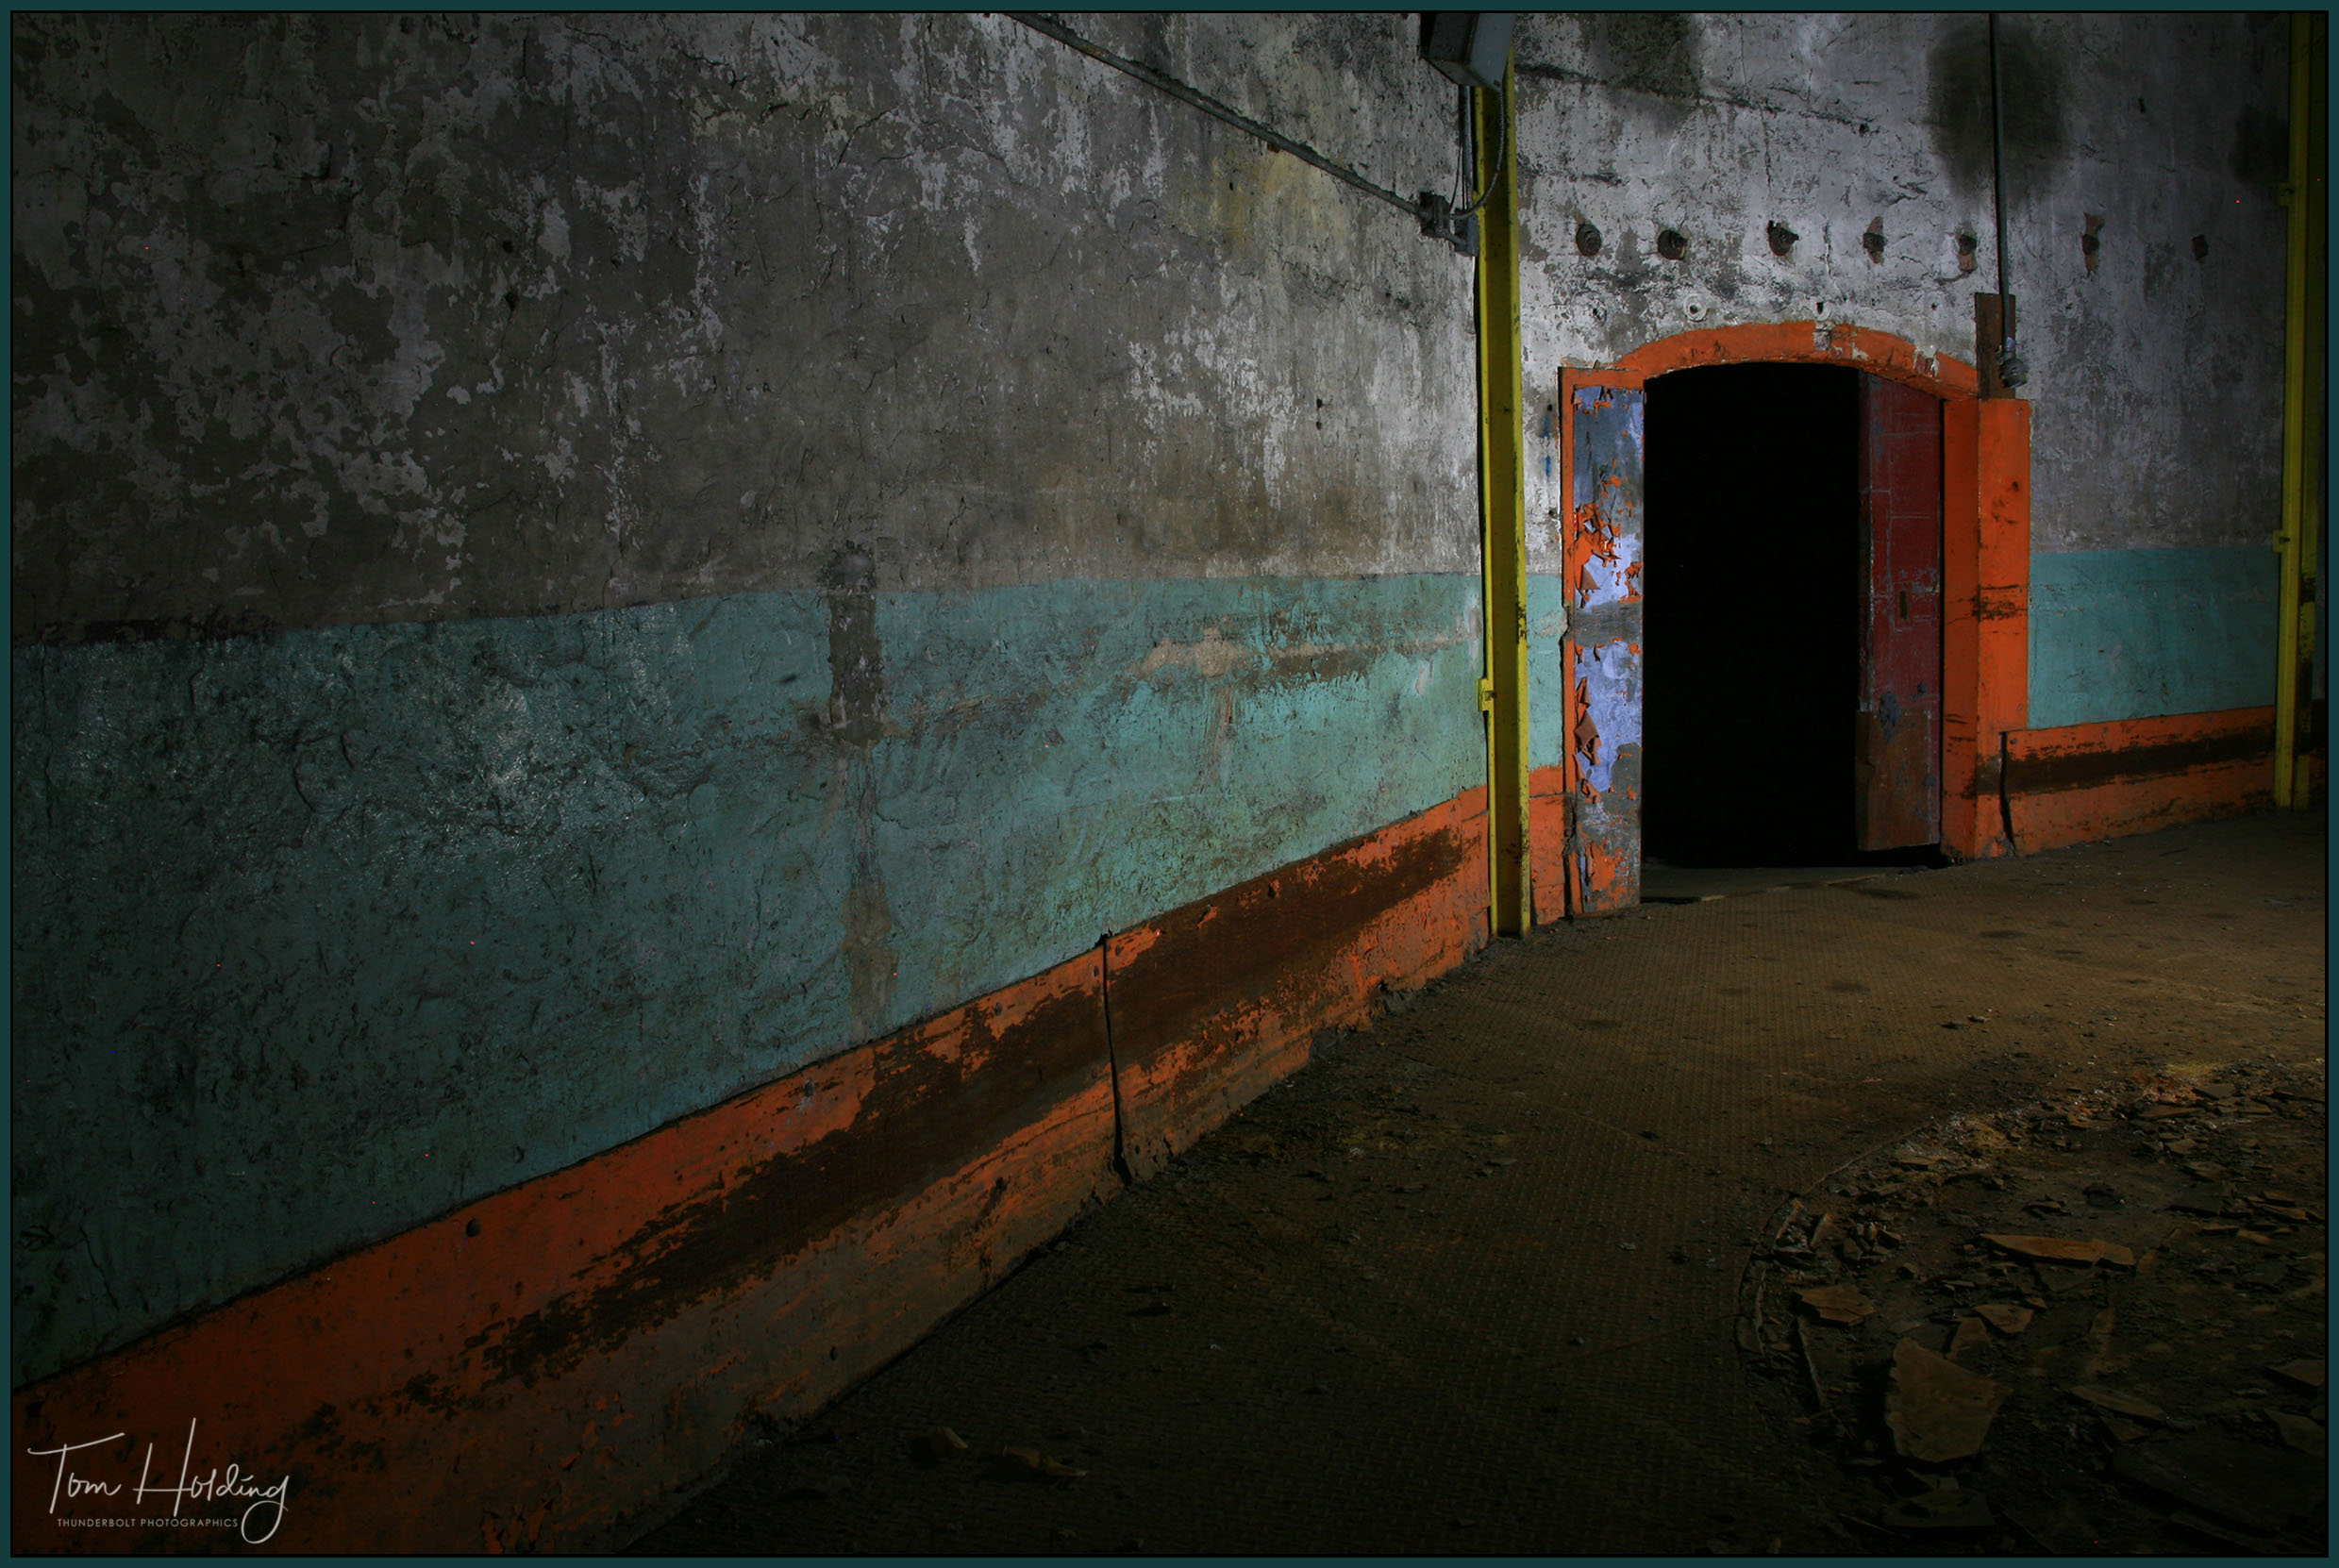 End of the Hallway